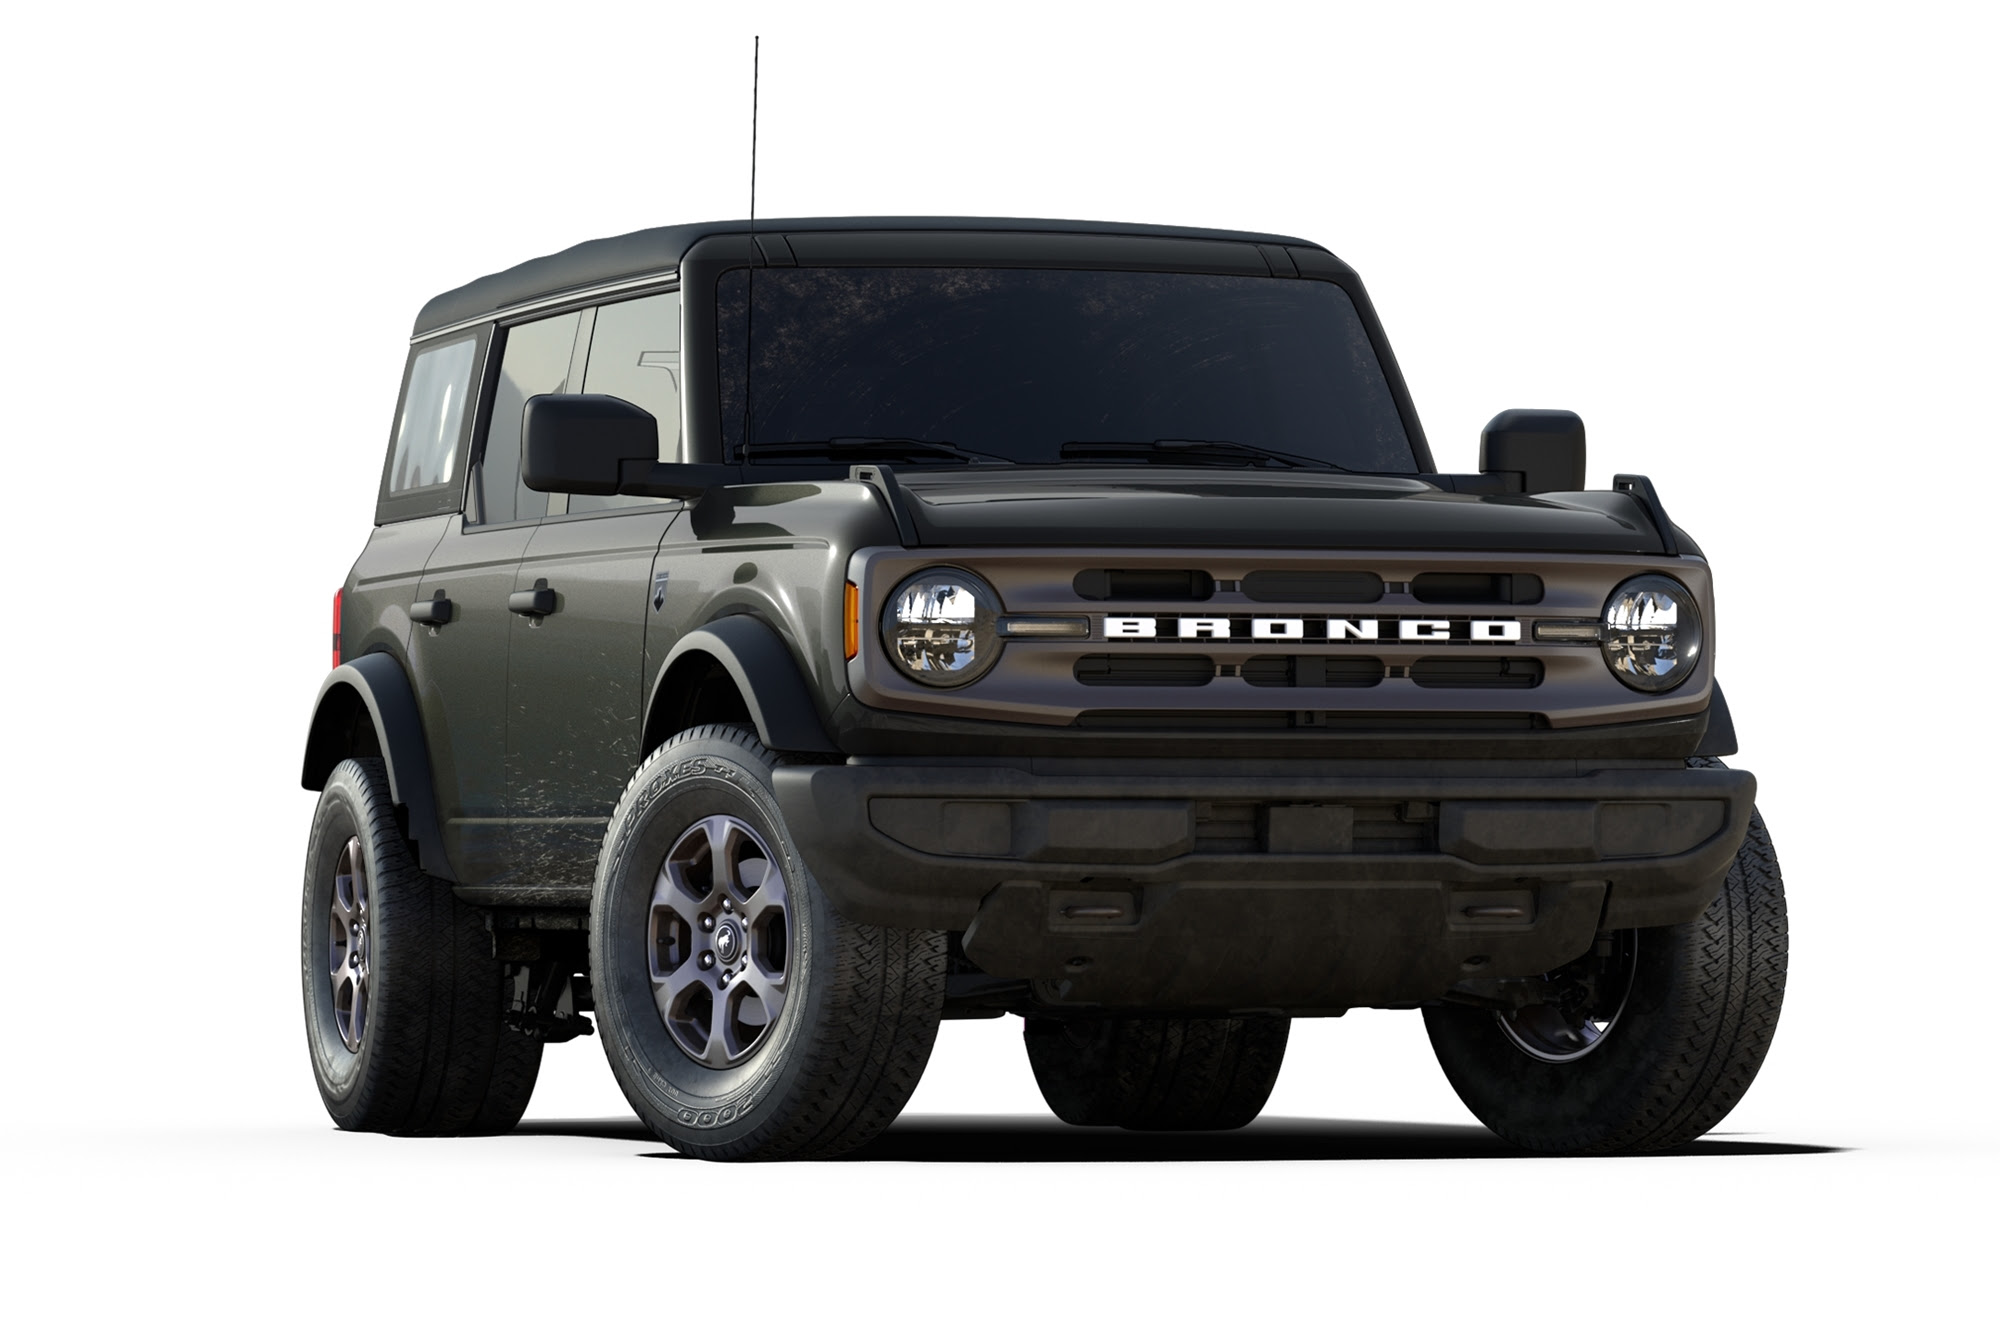 2021 ford bronco first edition 4door full specs features